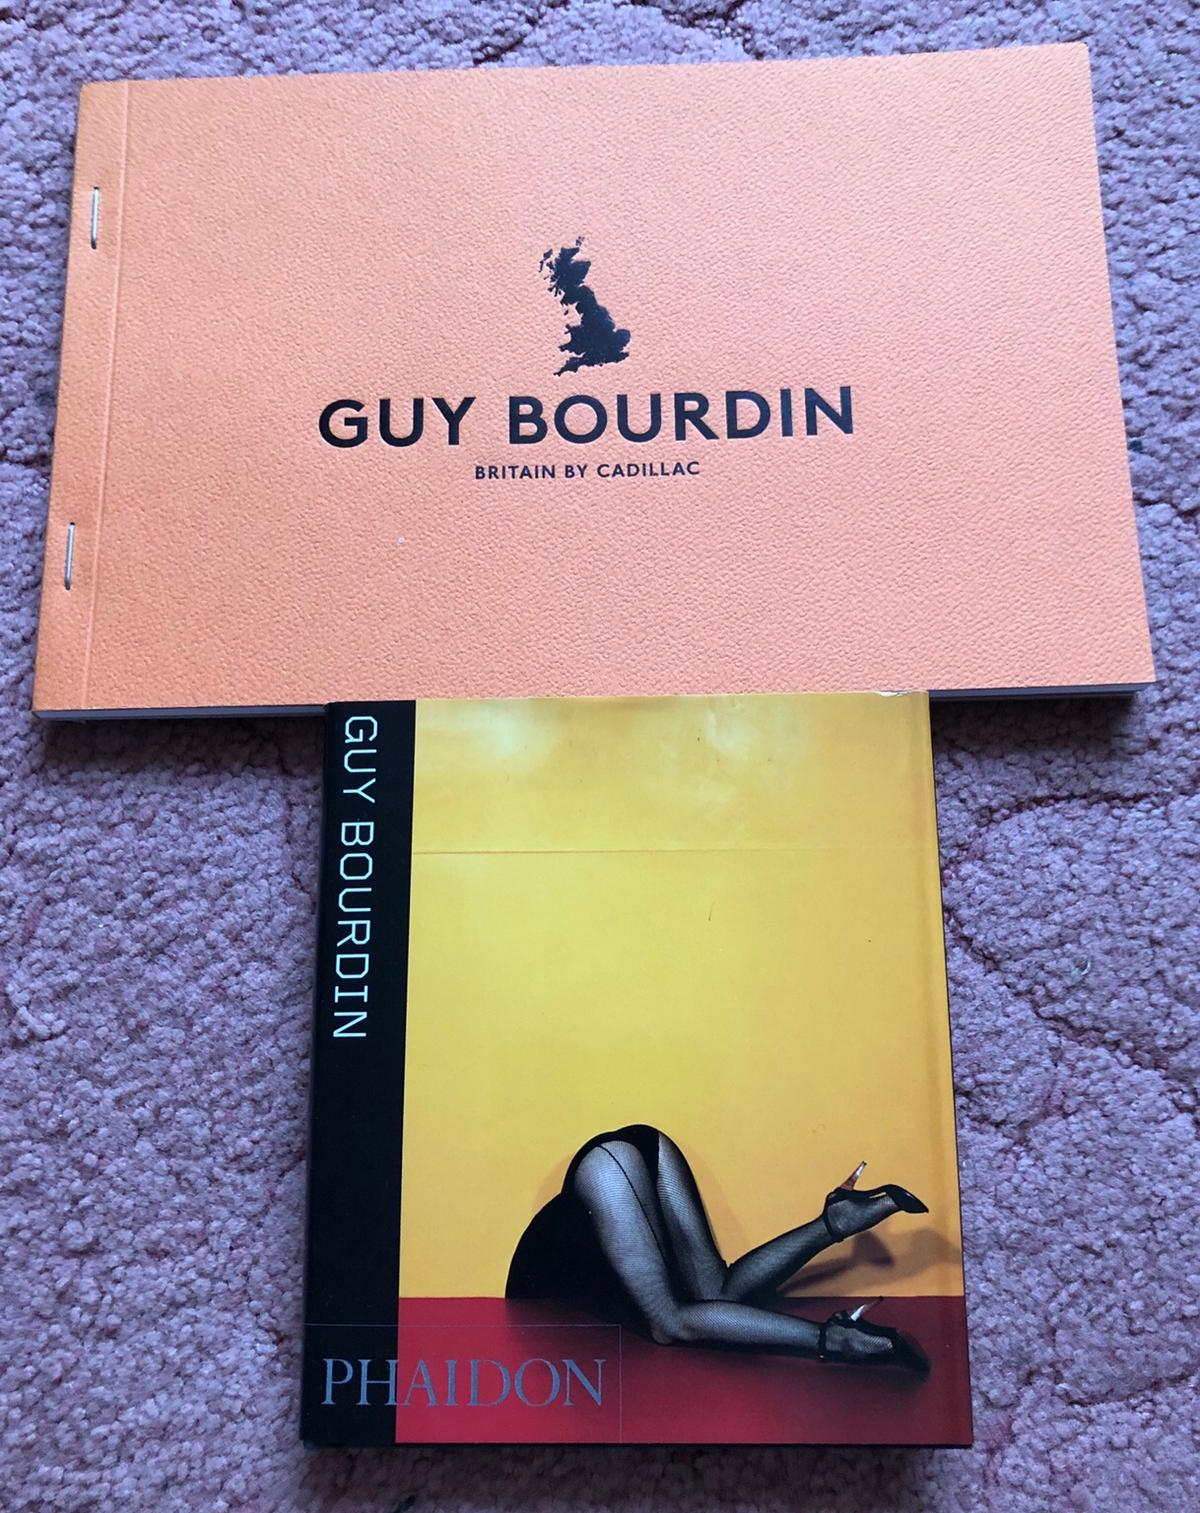 Guy Bourdin, book and catalogue, LIKE NEW in RM7 London for